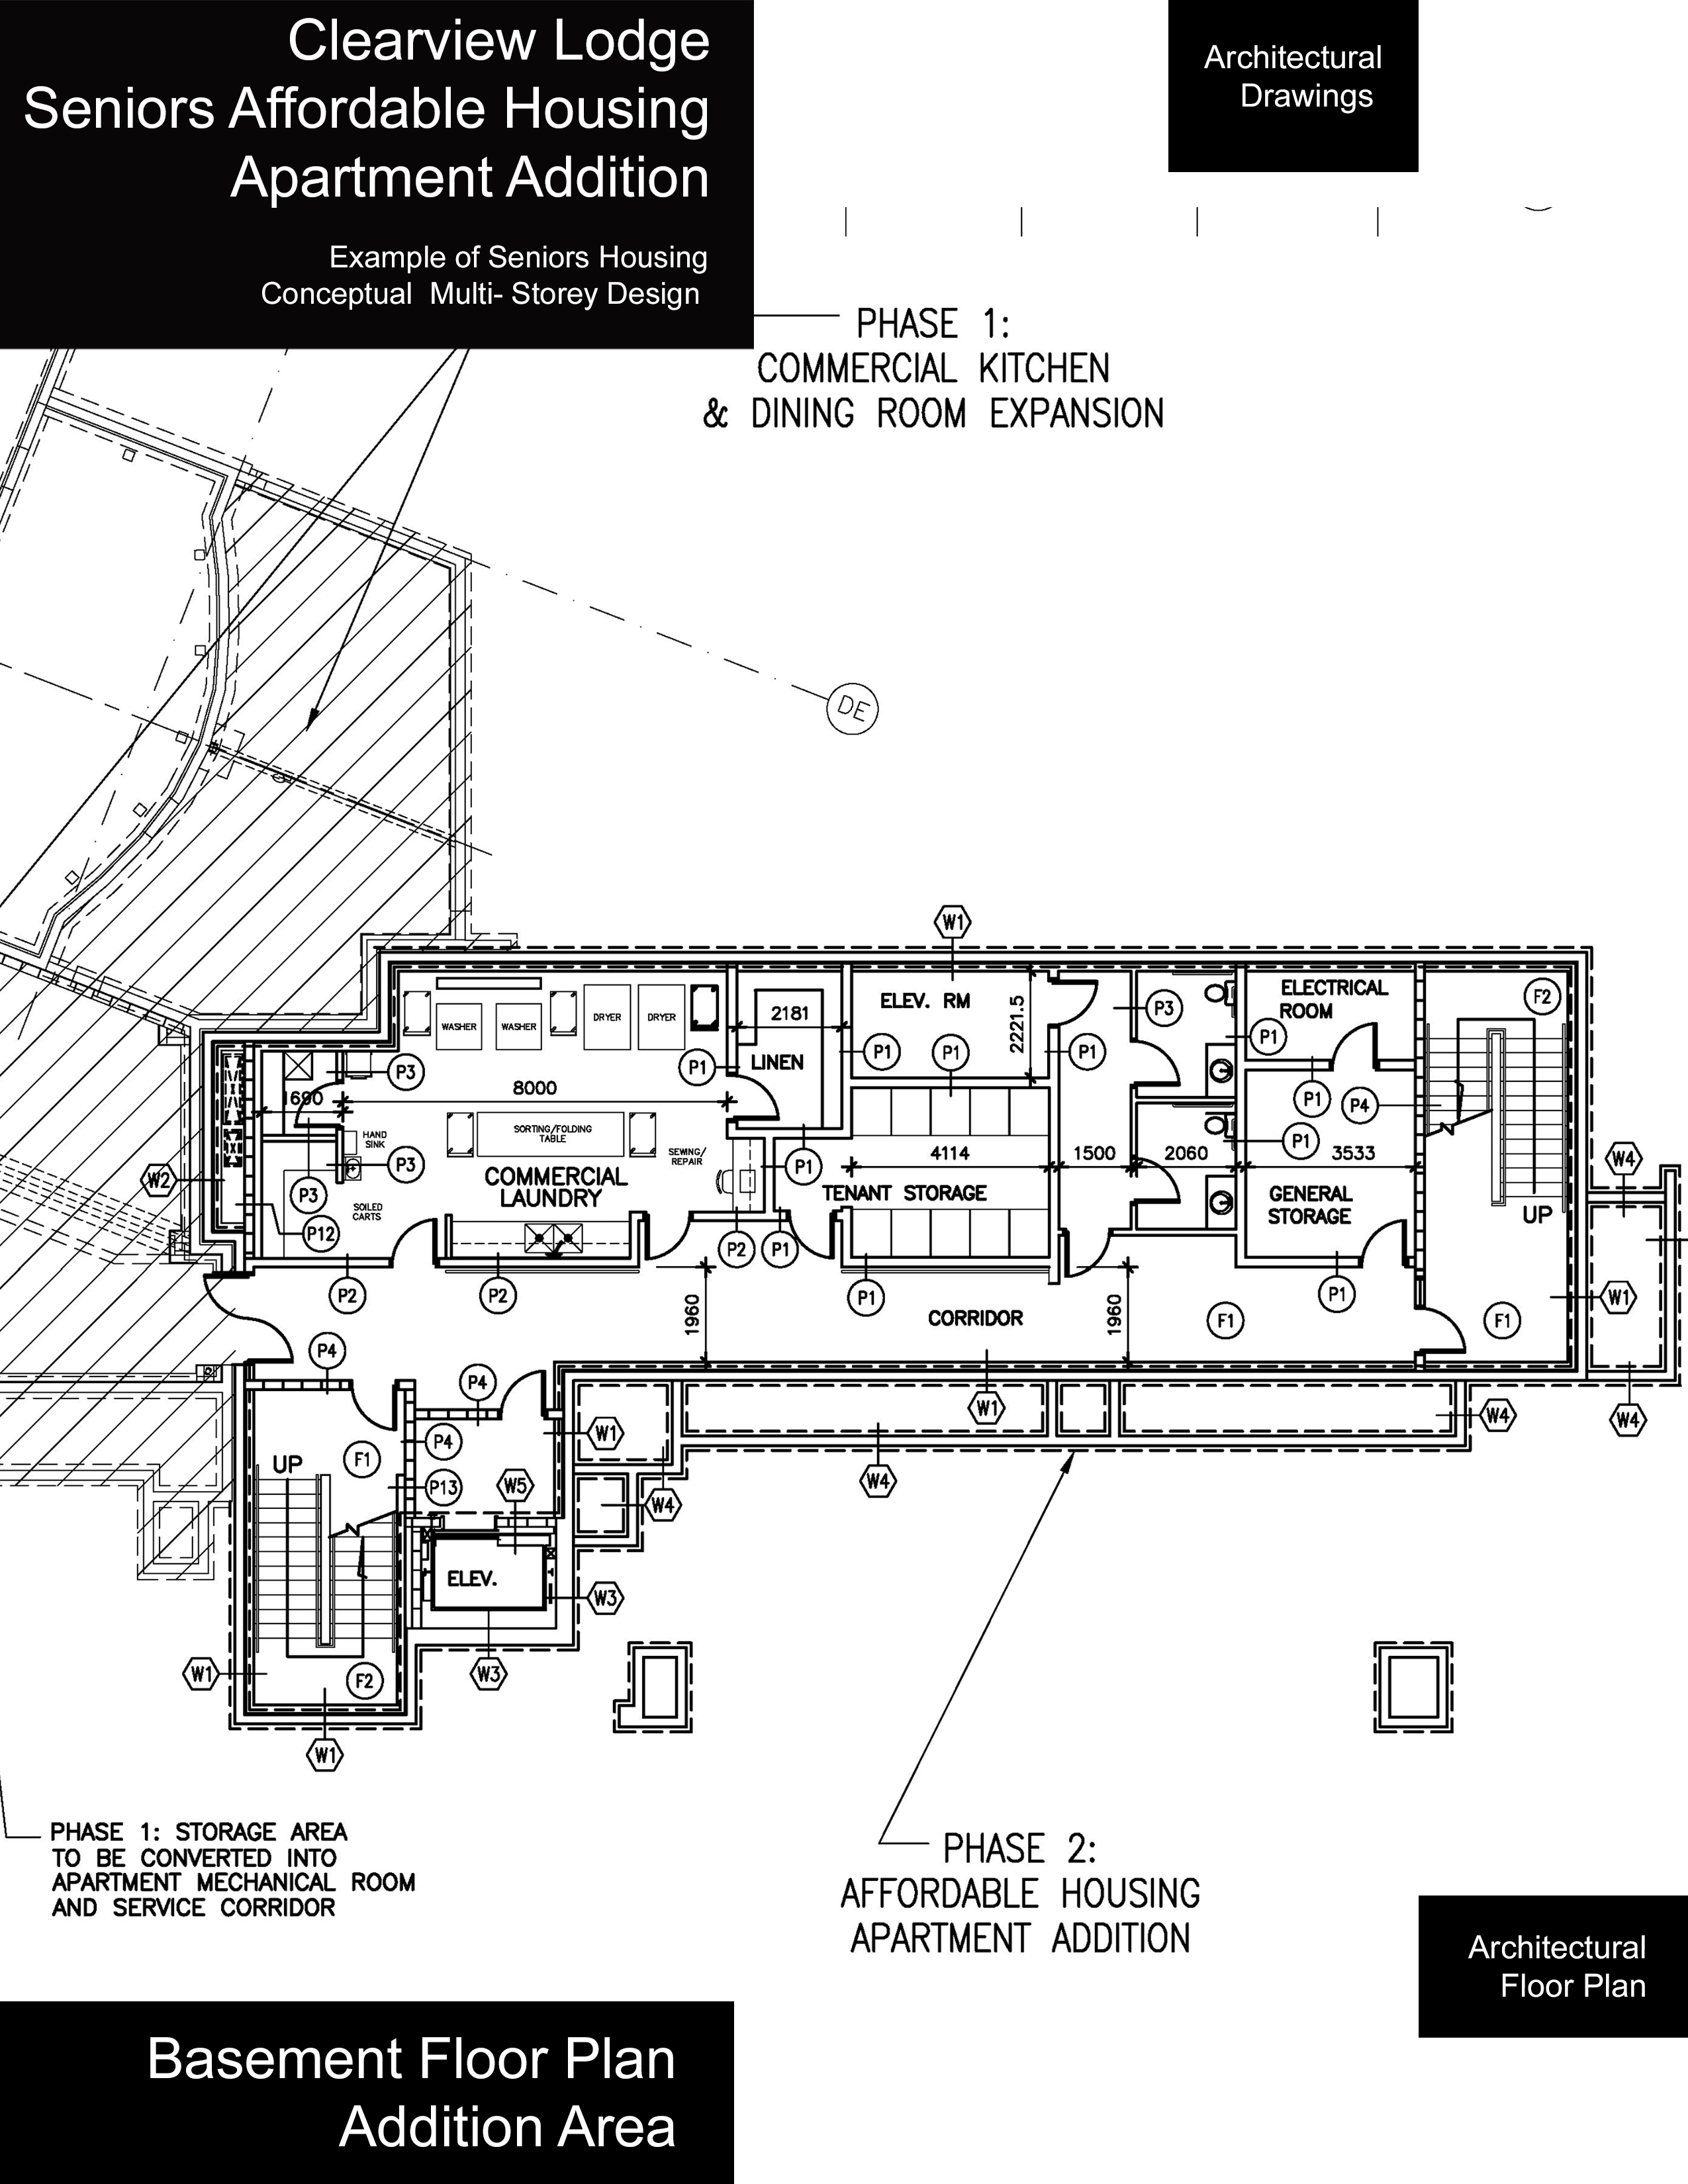 Clearview_Lodge_rApartment_Additions_sheet_2.jpg